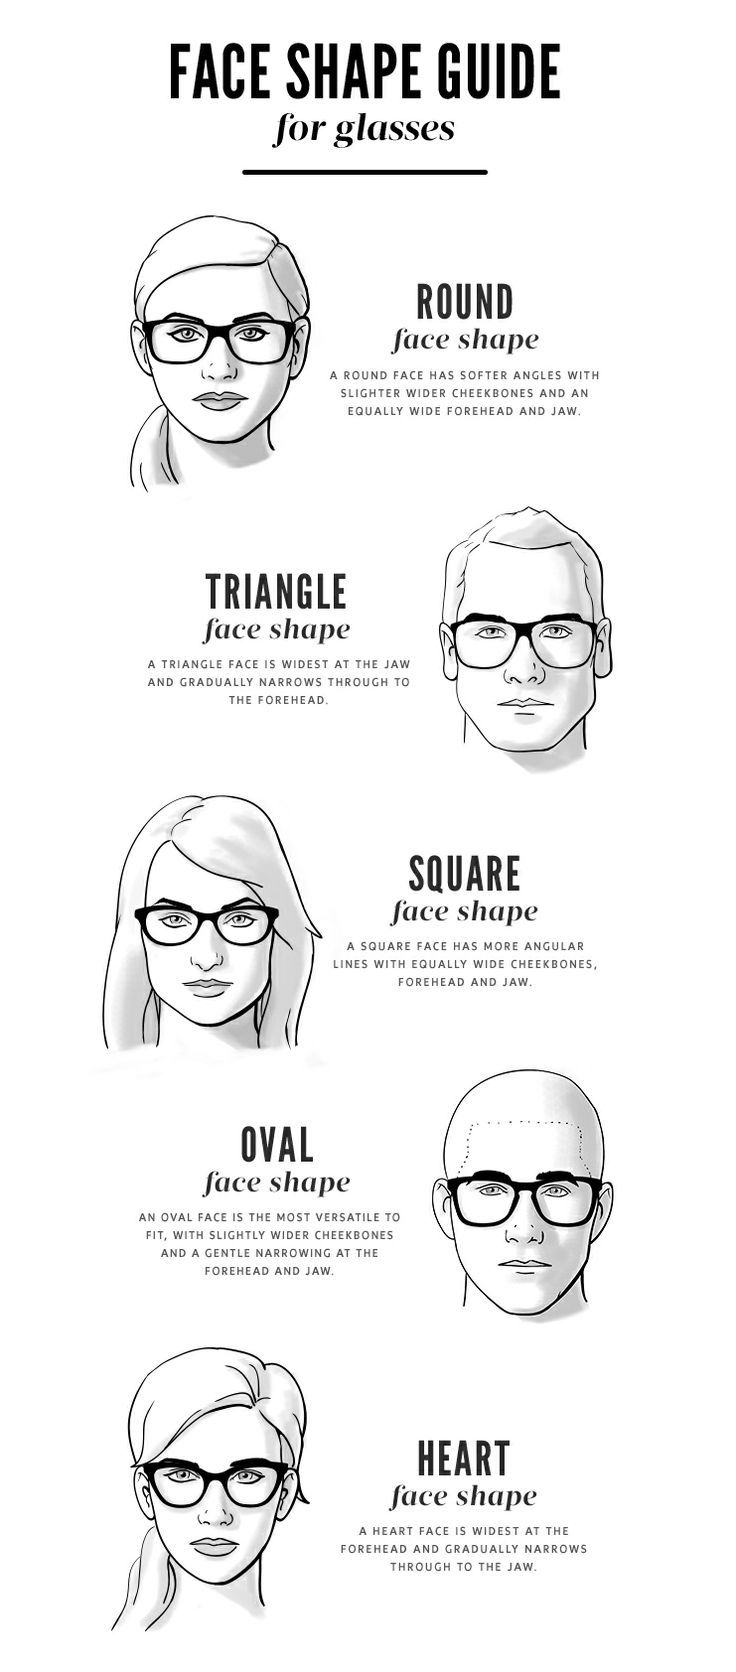 d1008aa0d6 How to choose Perfect Sunglasses according to Face Shape